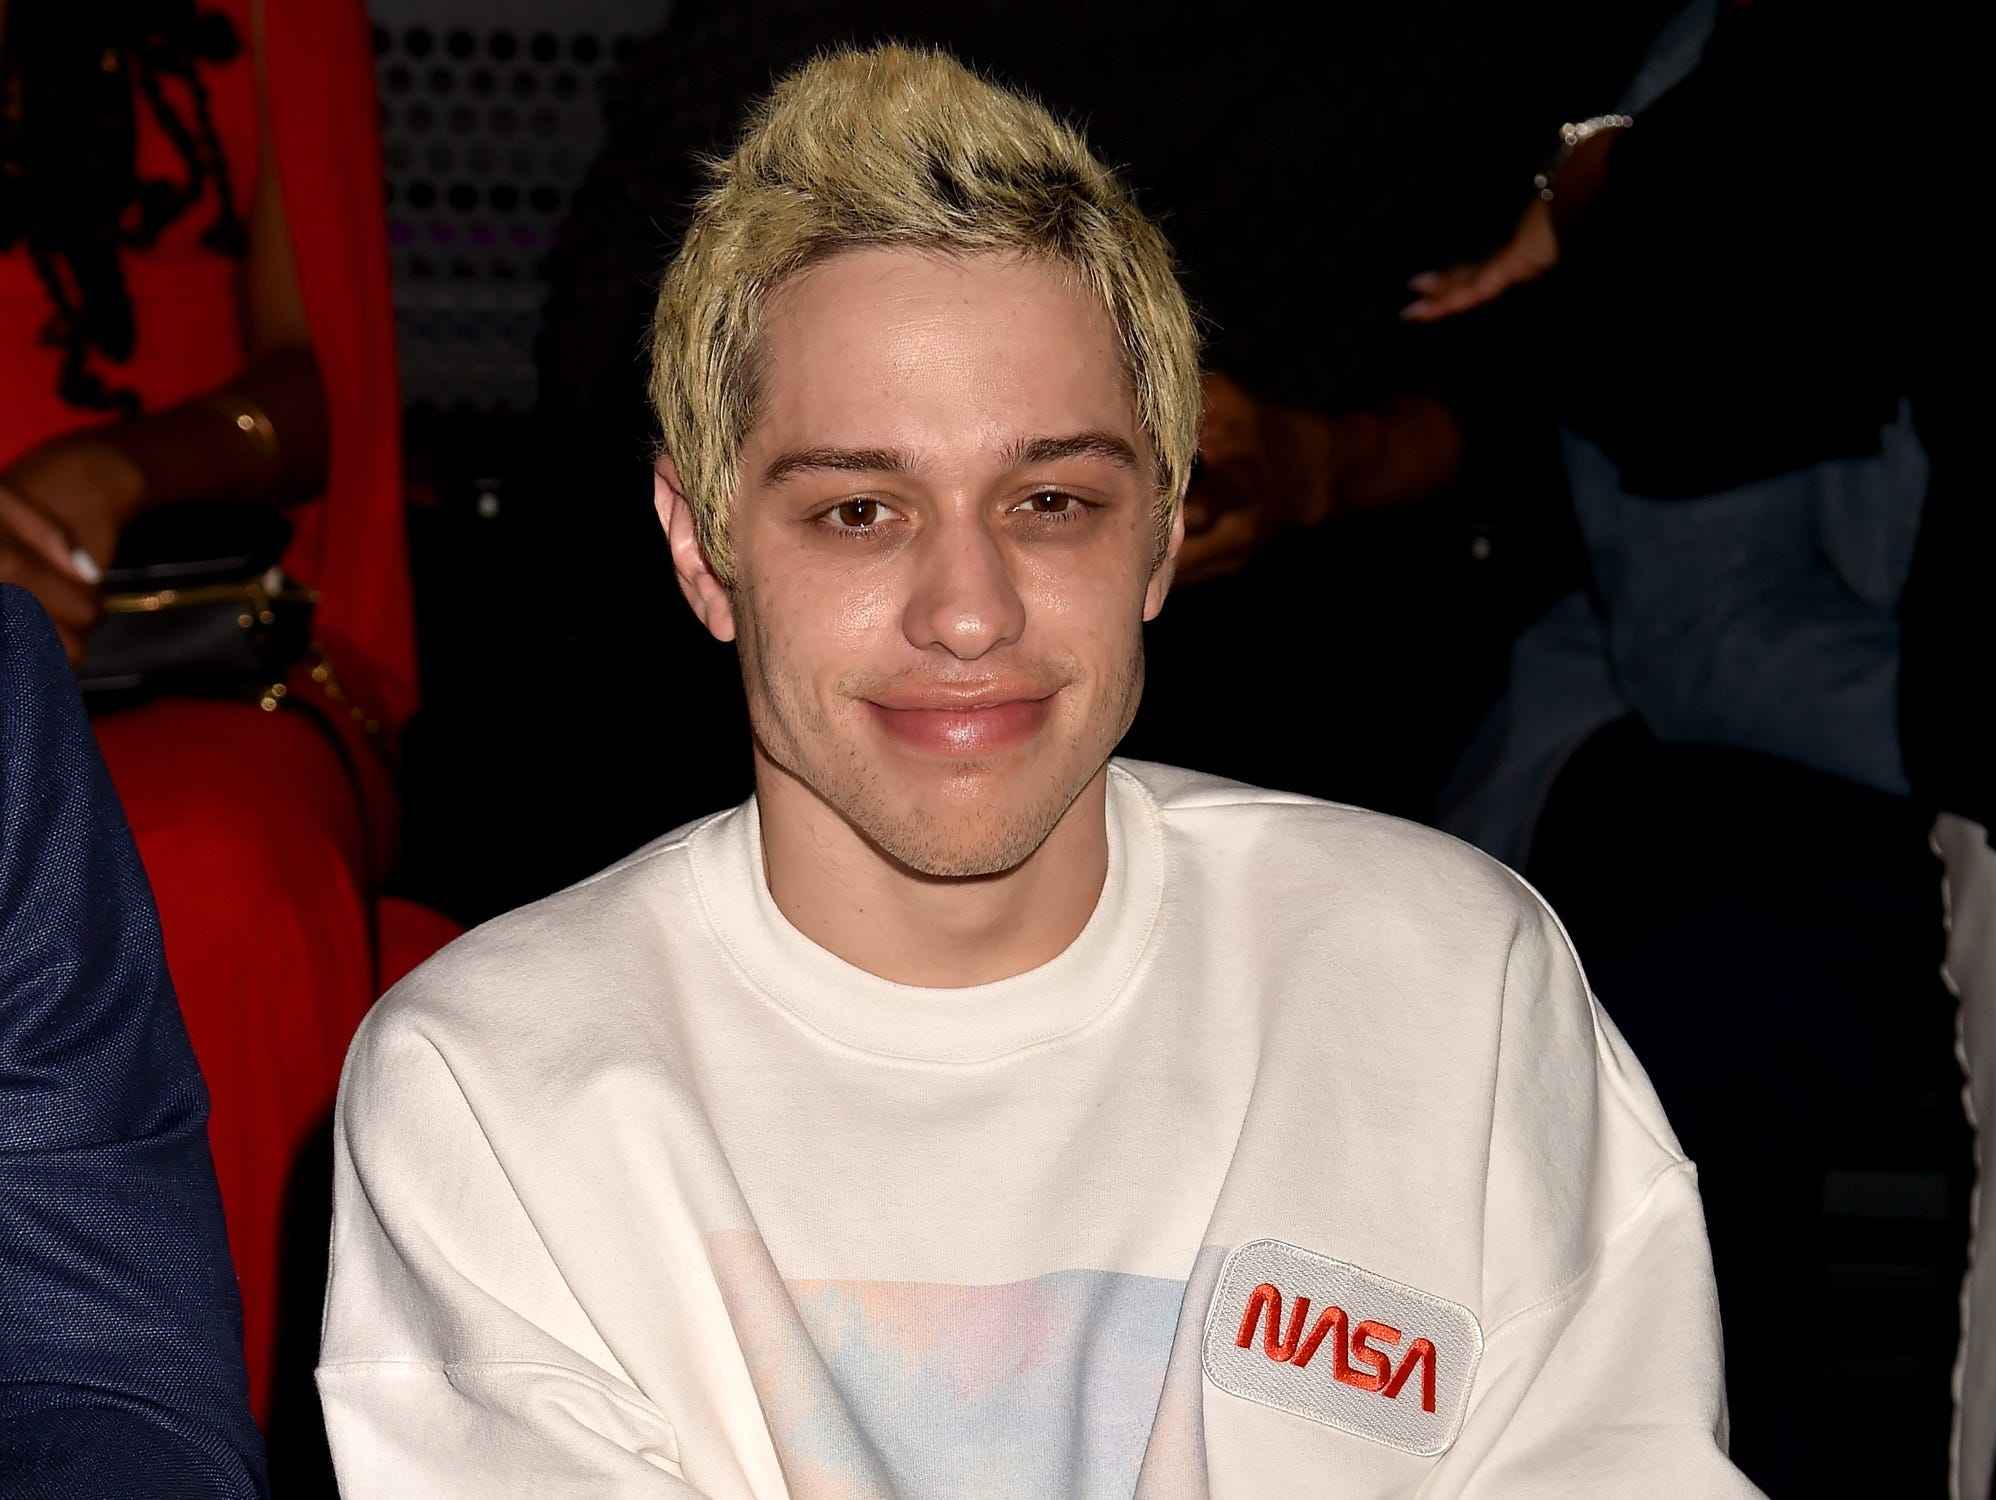 NEW YORK, NY - AUGUST 20:  Pete Davidson attends the 2018 MTV Video Music Awards at Radio City Music Hall on August 20, 2018 in New York City.  (Photo by Jeff Kravitz/FilmMagic) ORG XMIT: 775211586 ORIG FILE ID: 1020372450